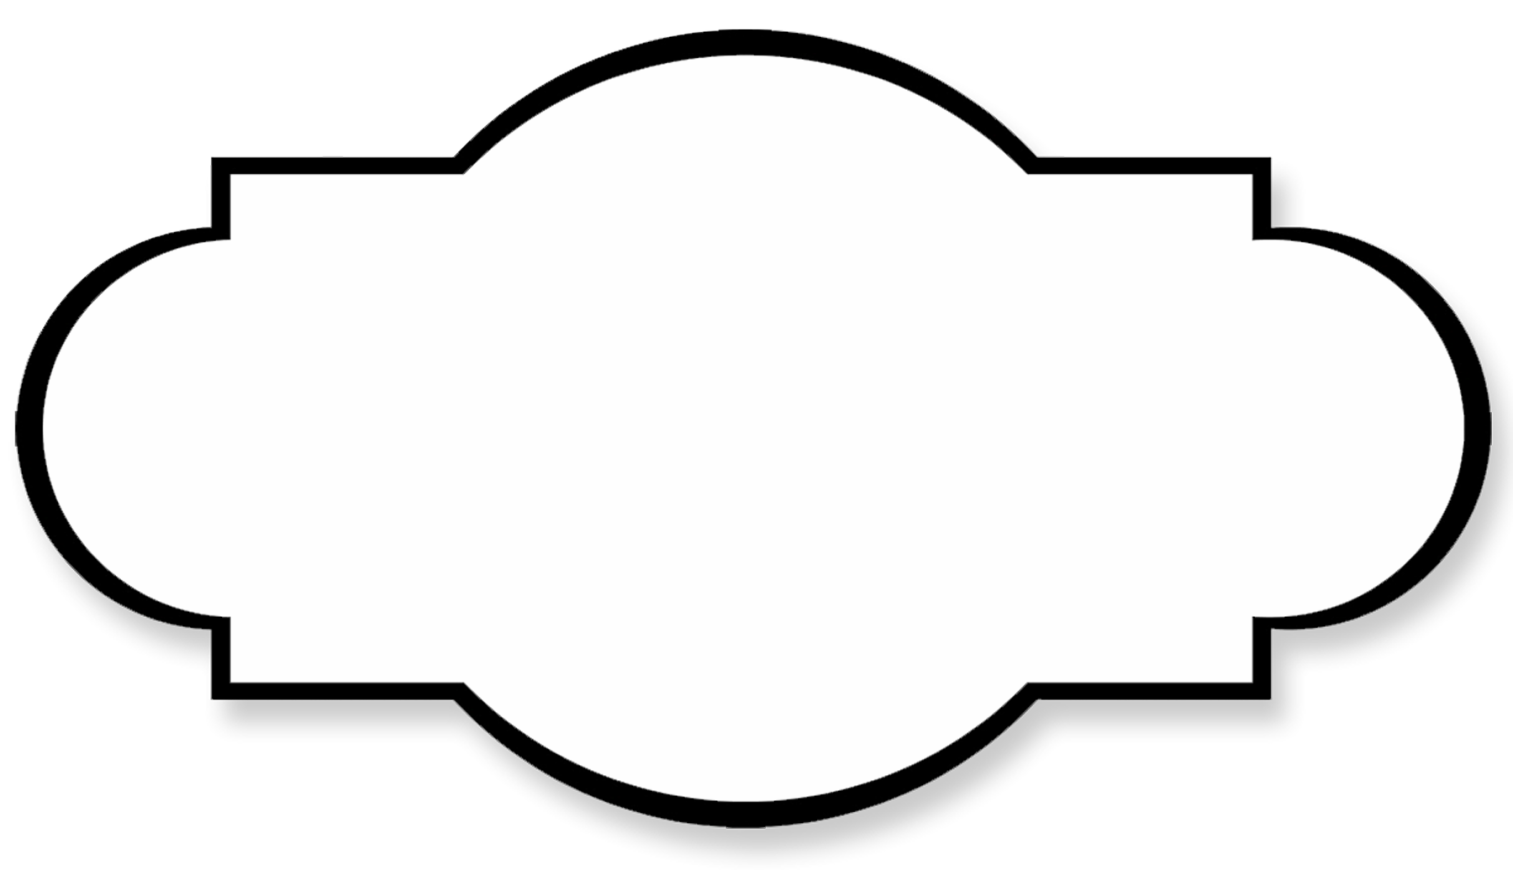 Black and white labels png. Shared simple label